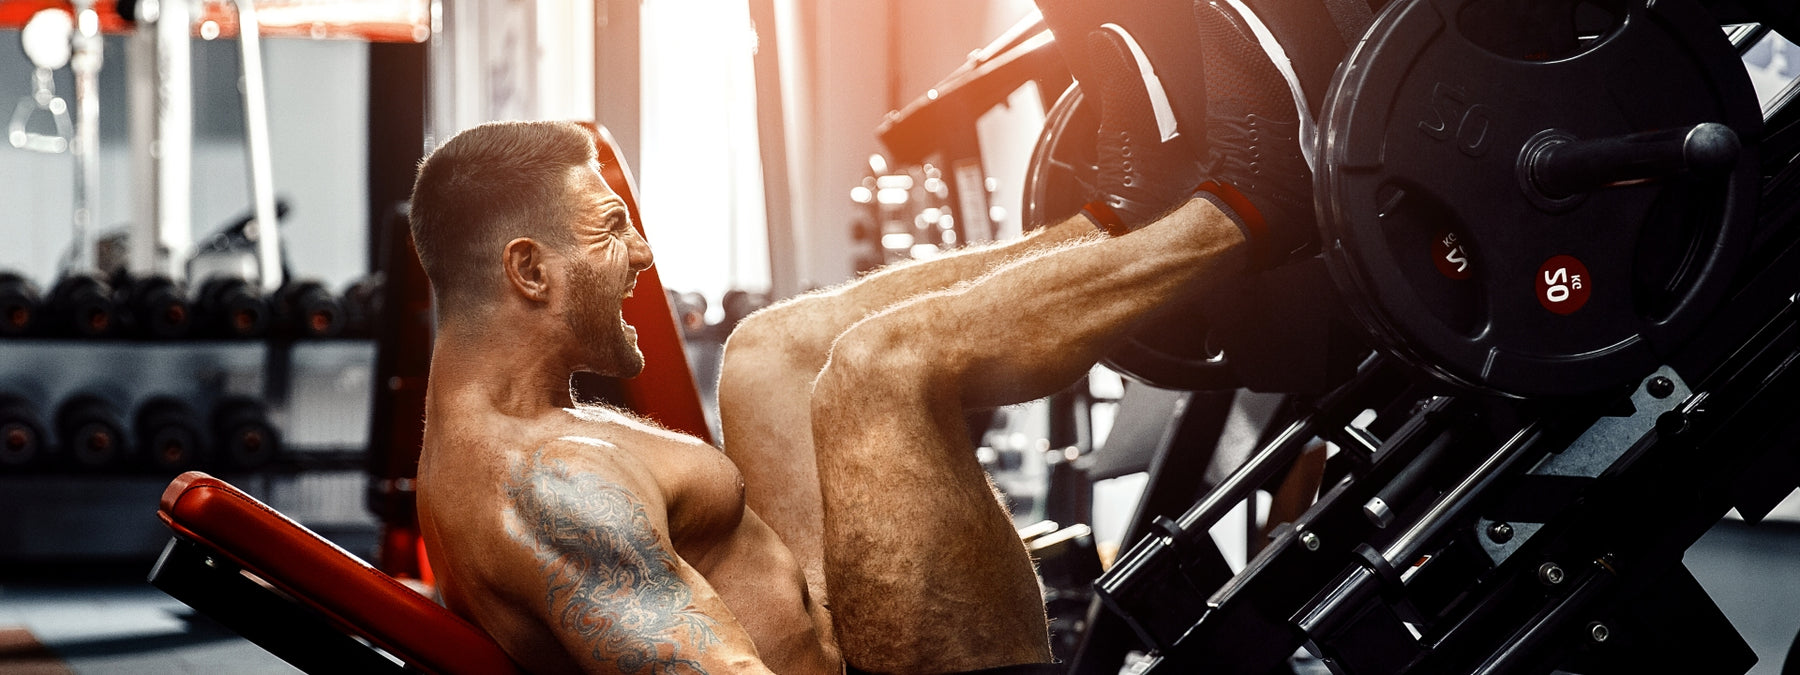 10 Muscle Building Facts Everyone Needs to Know